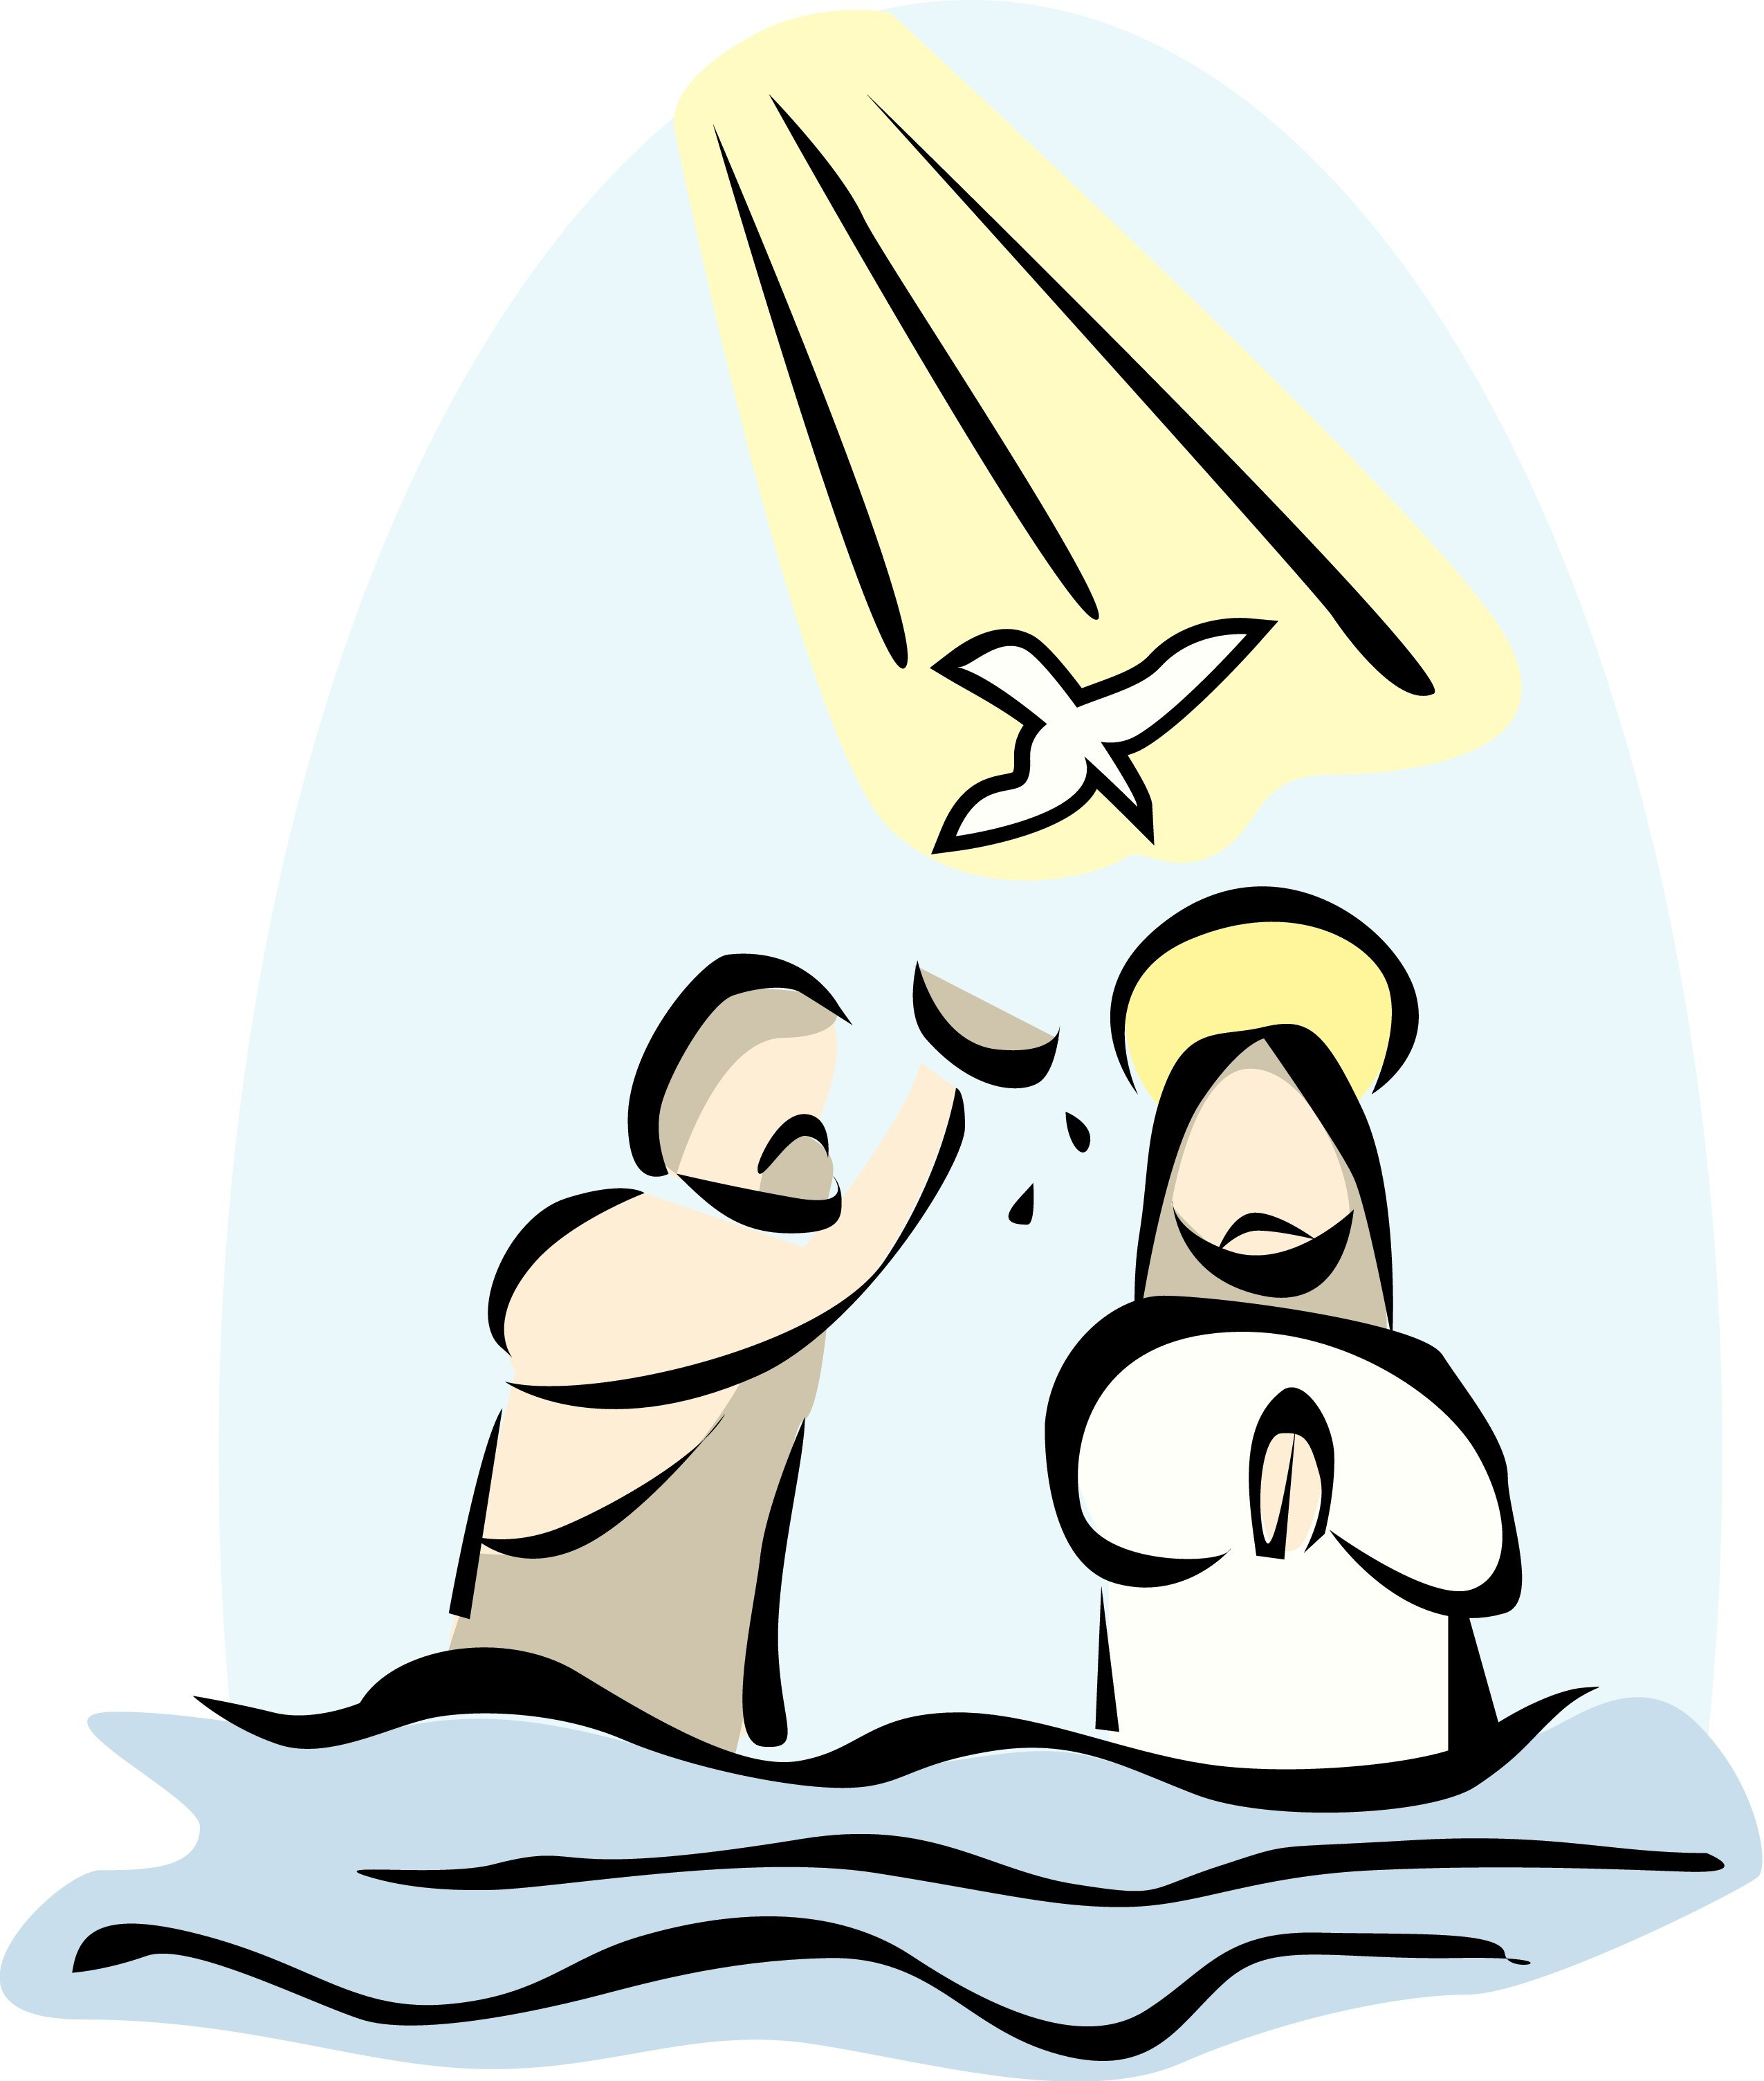 Clipart on jesus and john the baptist png black and white download Free Baptist Cliparts, Download Free Clip Art, Free Clip Art on ... png black and white download